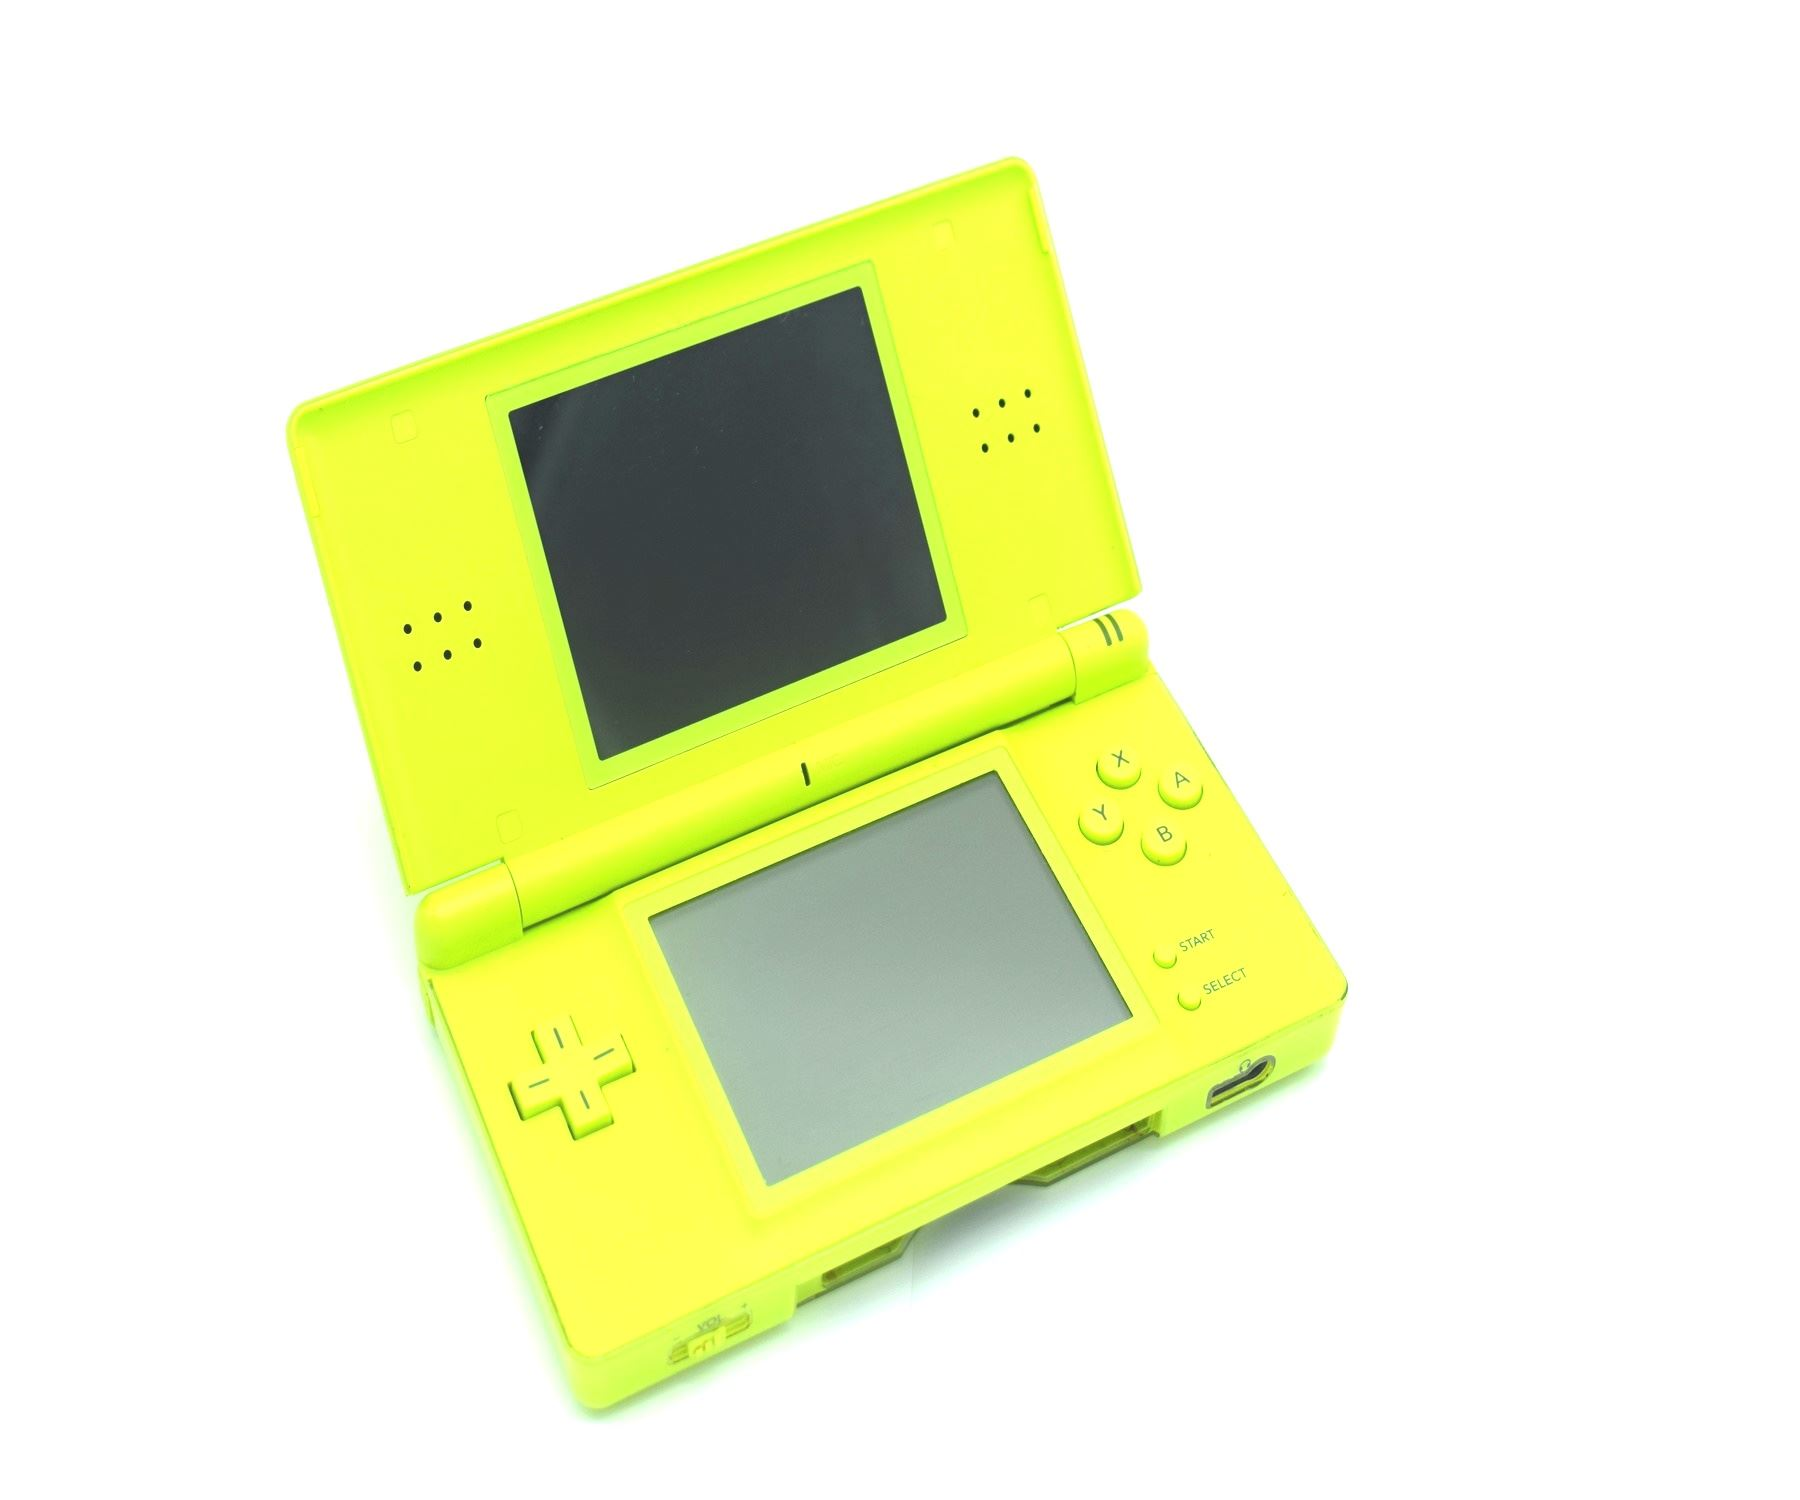 Nintendo-DS-Lite-Console-Handheld-Video-Game-System-NDSL-DS-NDS-DSL-8-Colours thumbnail 18